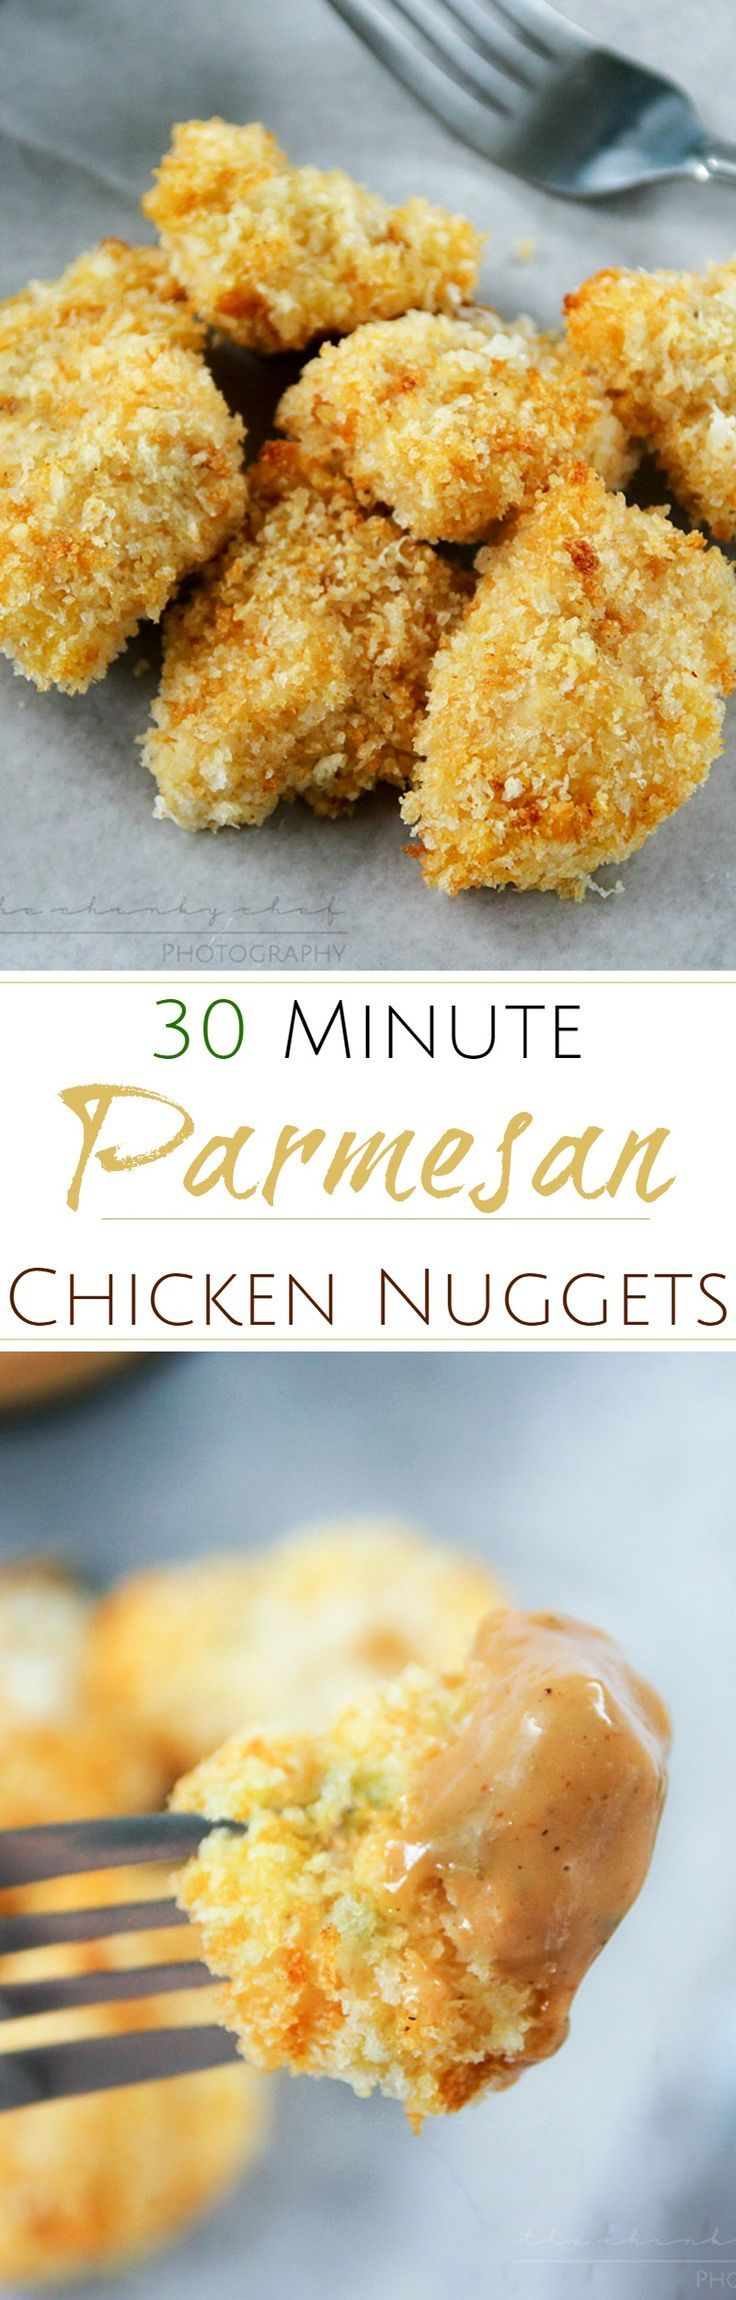 Parmesan Crusted Chicken Nuggets | The Chunky Chef | Amazingly crispy and flavorful baked Parmesan crusted chicken nuggets that both kids and adults will love! Ready in 30 minutes!